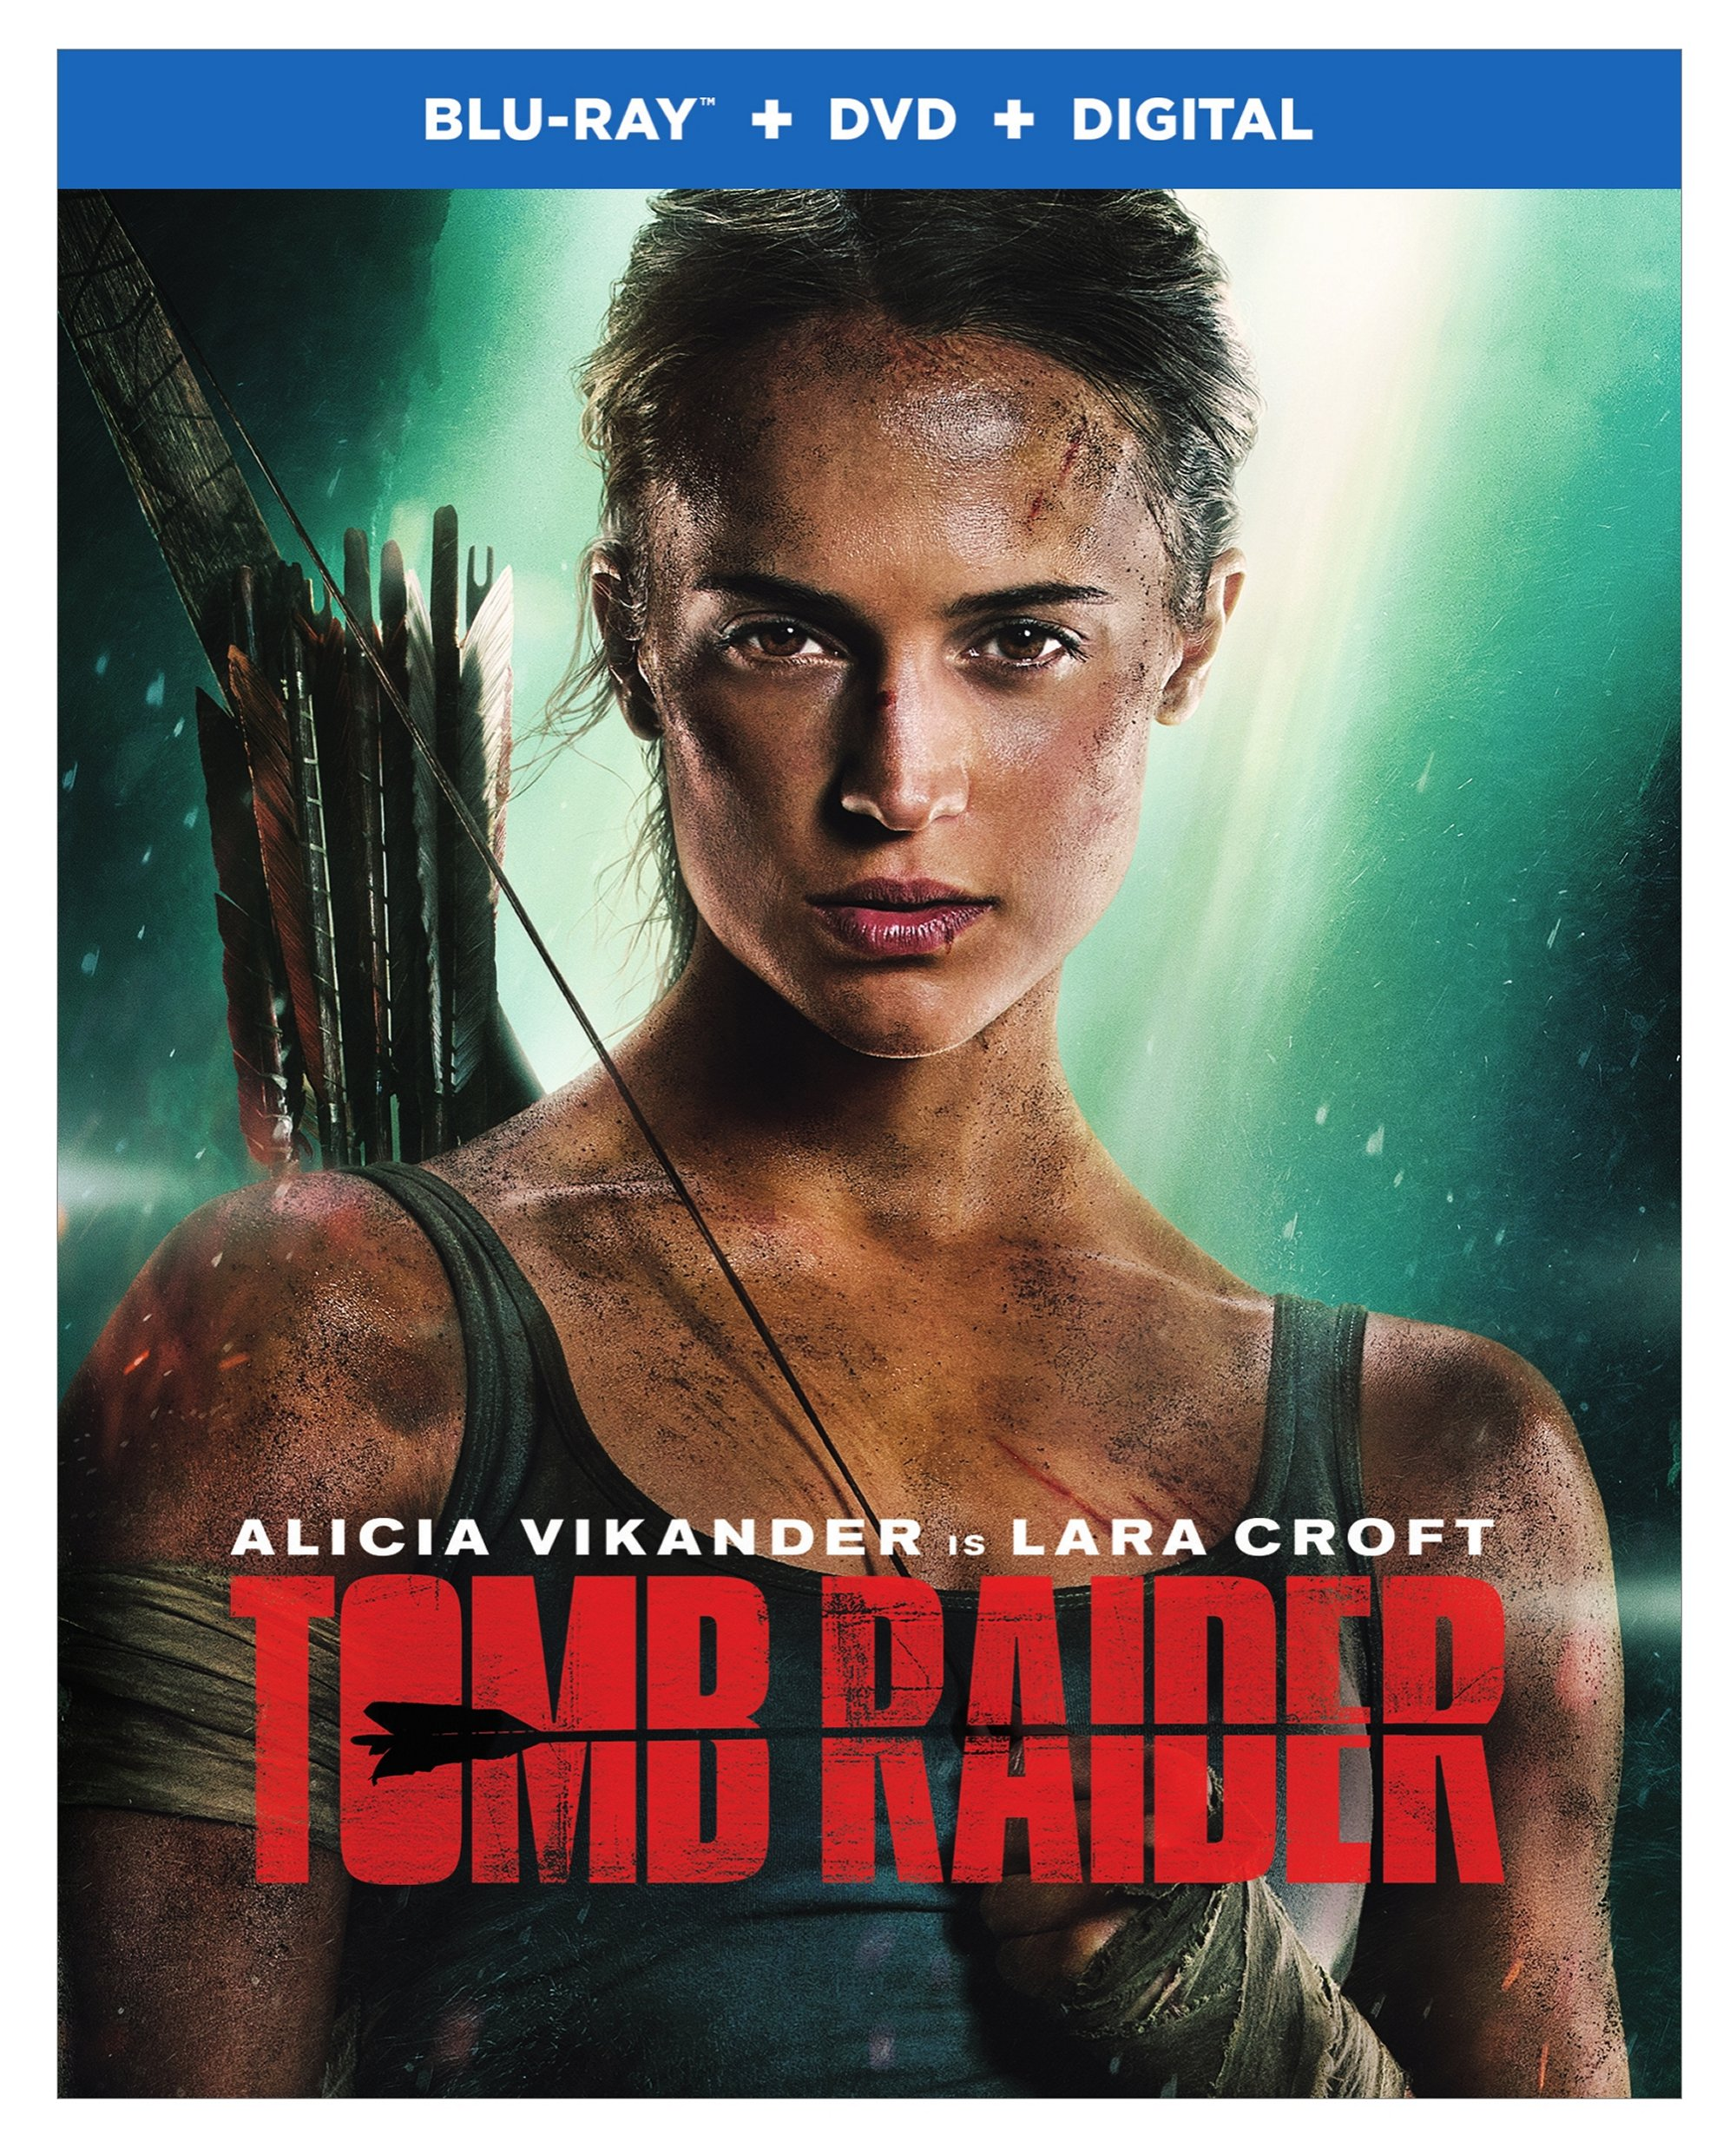 Tomb Raider Home Video Boasts Behind The Scenes Training